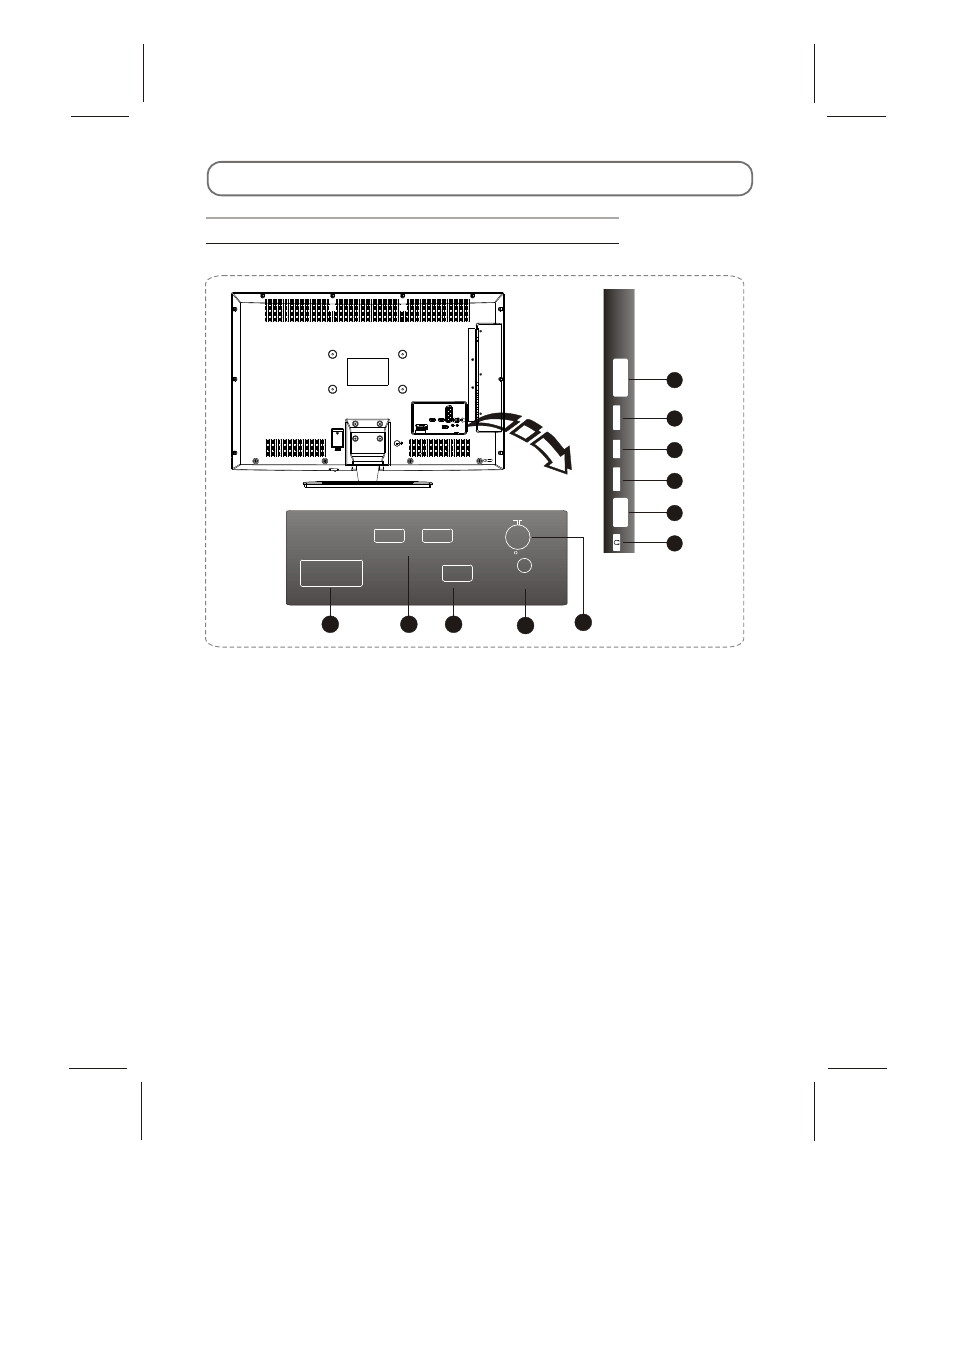 External schematic and installation, Back panel | Skyworth LED-32E60 ...